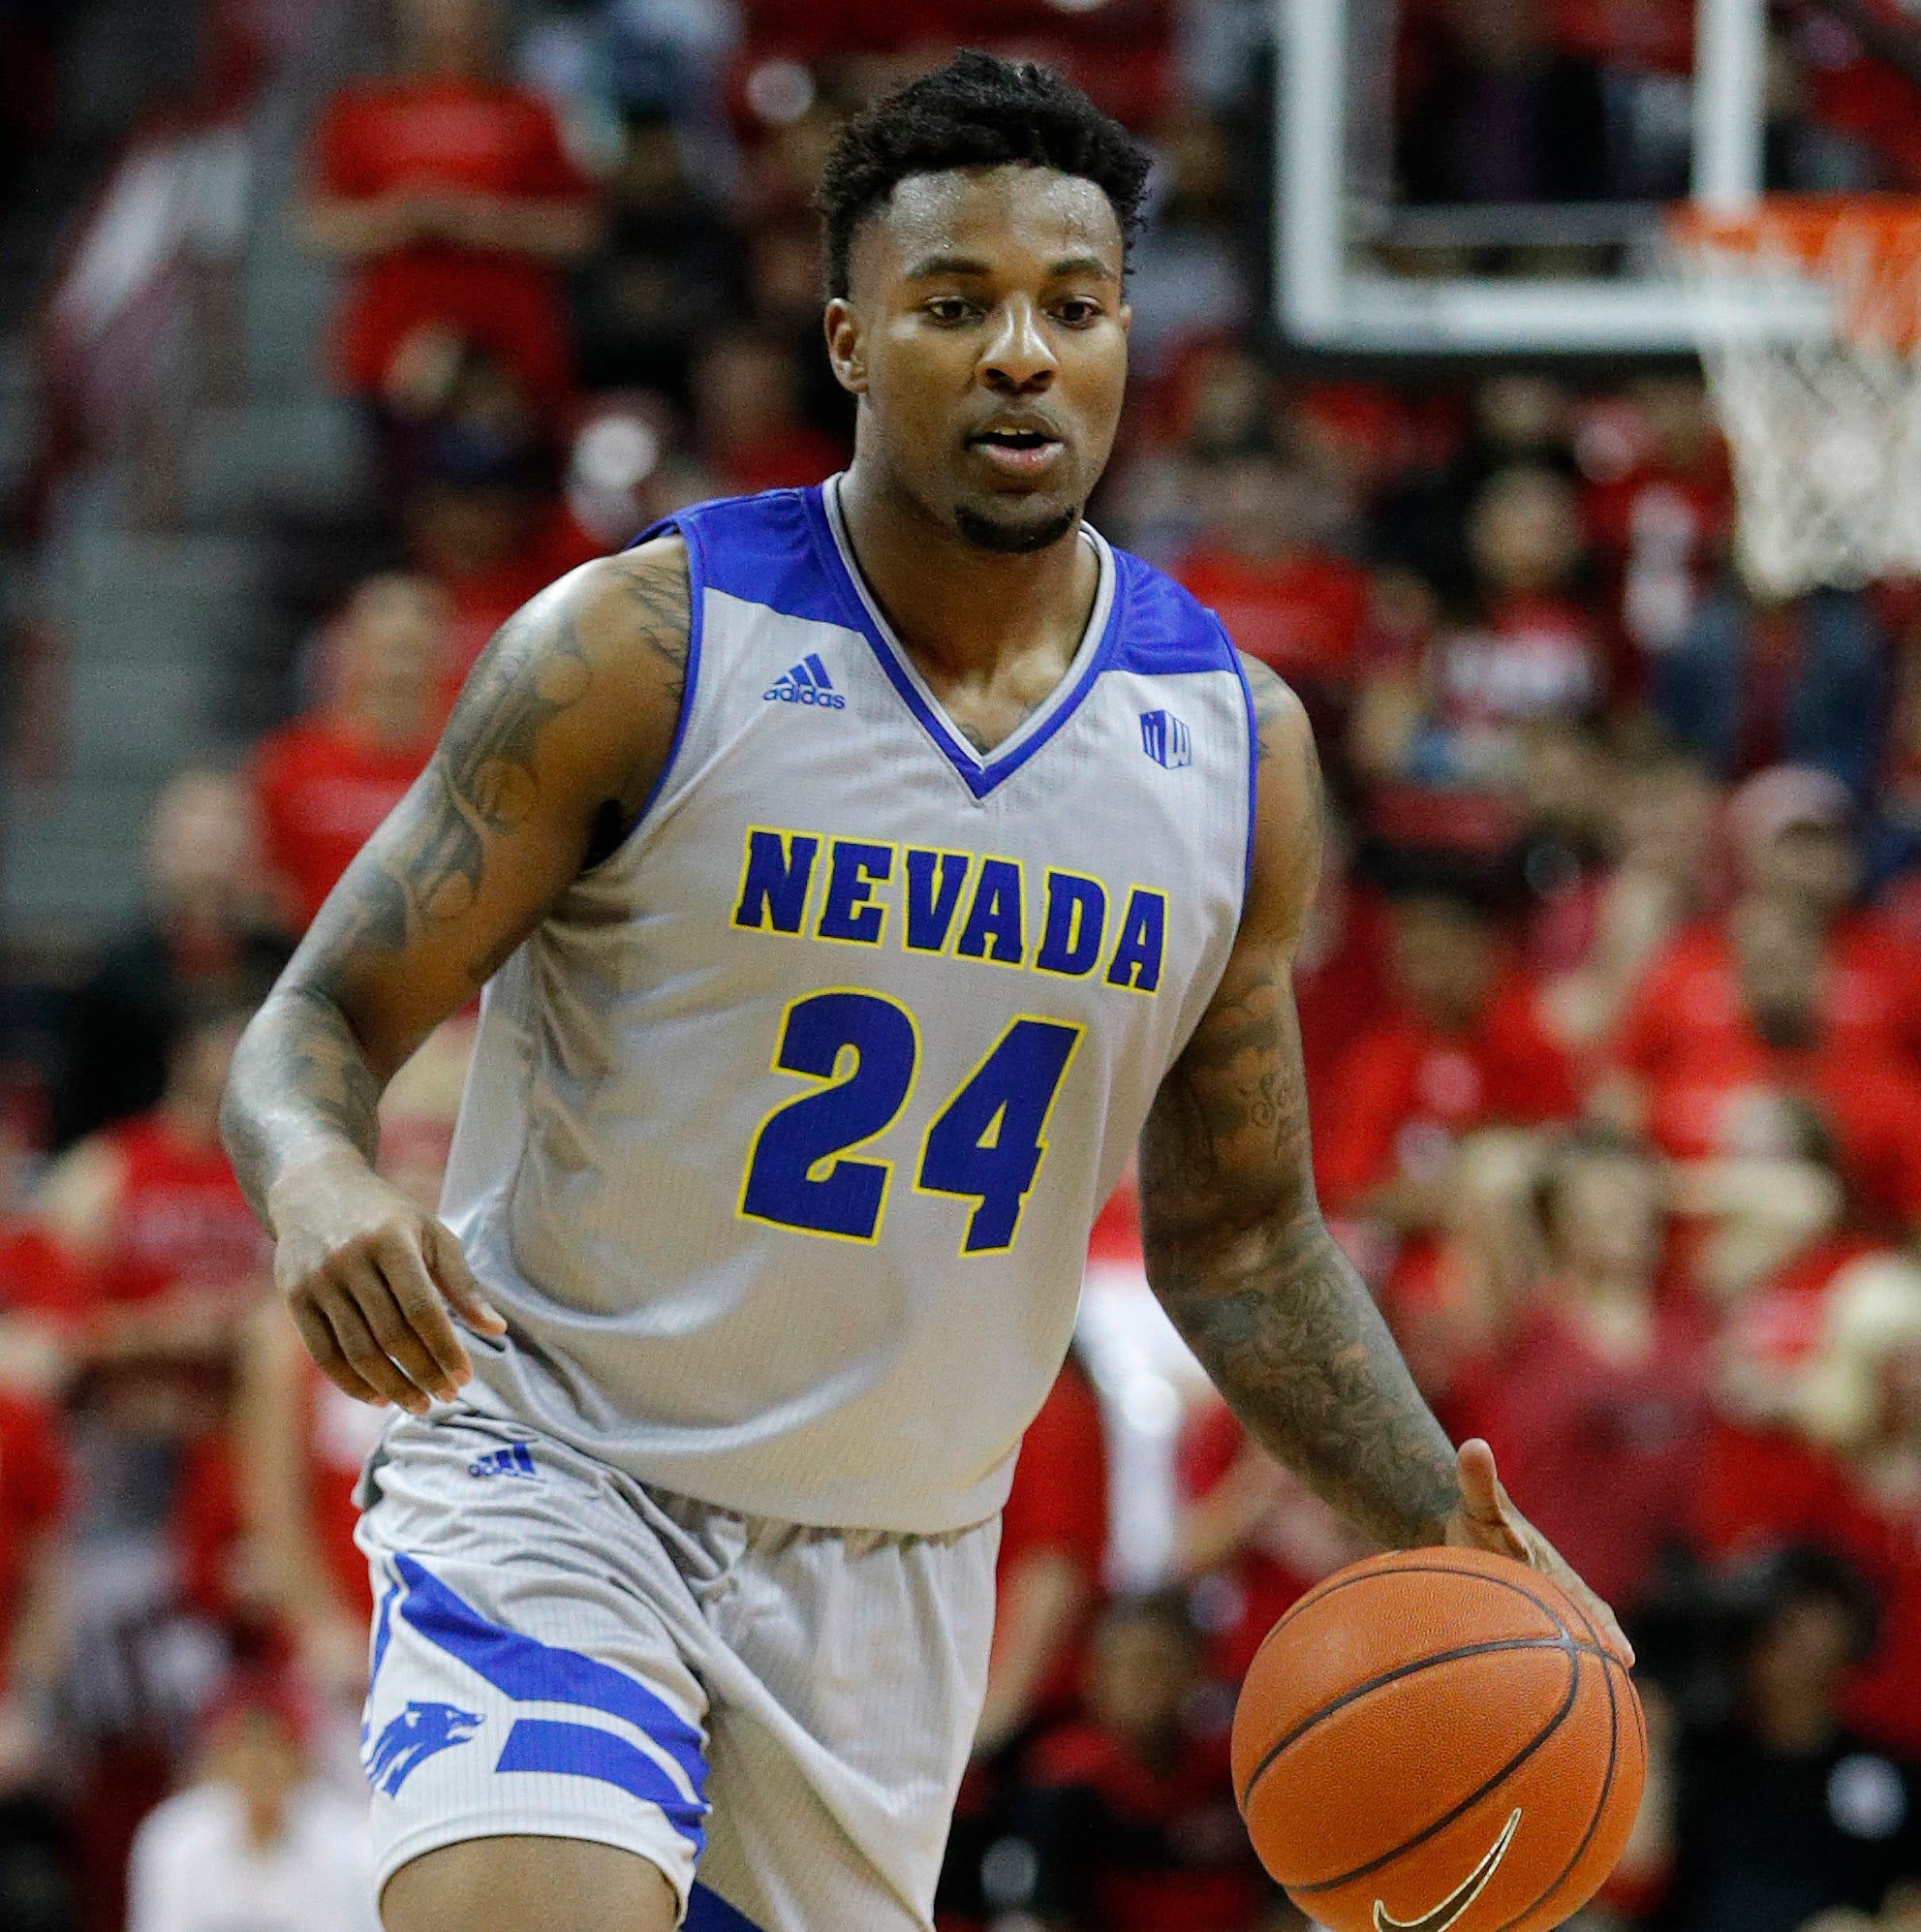 Nevada's Jordan Caroline out for Mountain West tournament semifinal vs. SDSU basketball